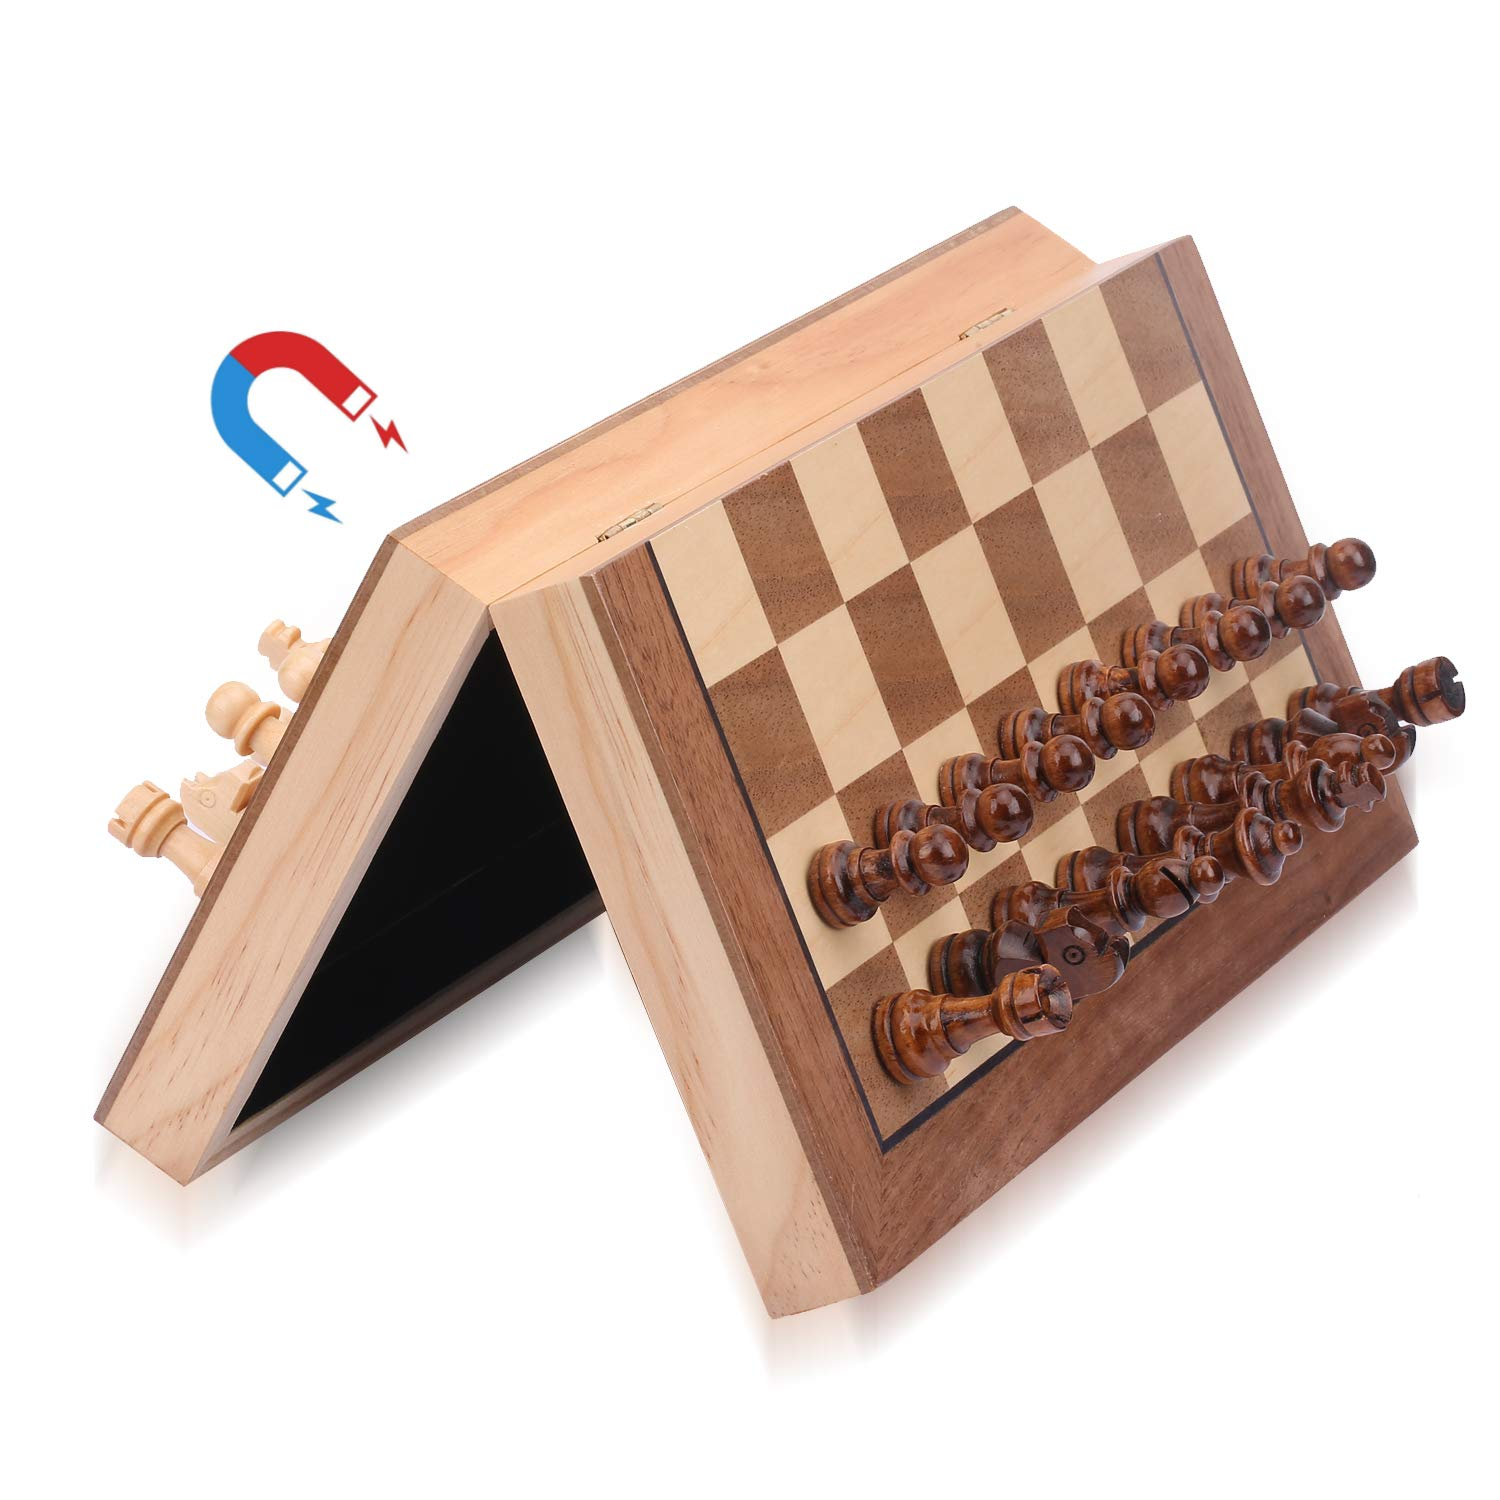 ColorGo Magnetic Wood Chess Set with Folding Chess Board,11.5x11.5 Inch Portable Travel Wooden Chess Game Set for Kids and Adults,Includes Extra Kings Queens by Sunwing